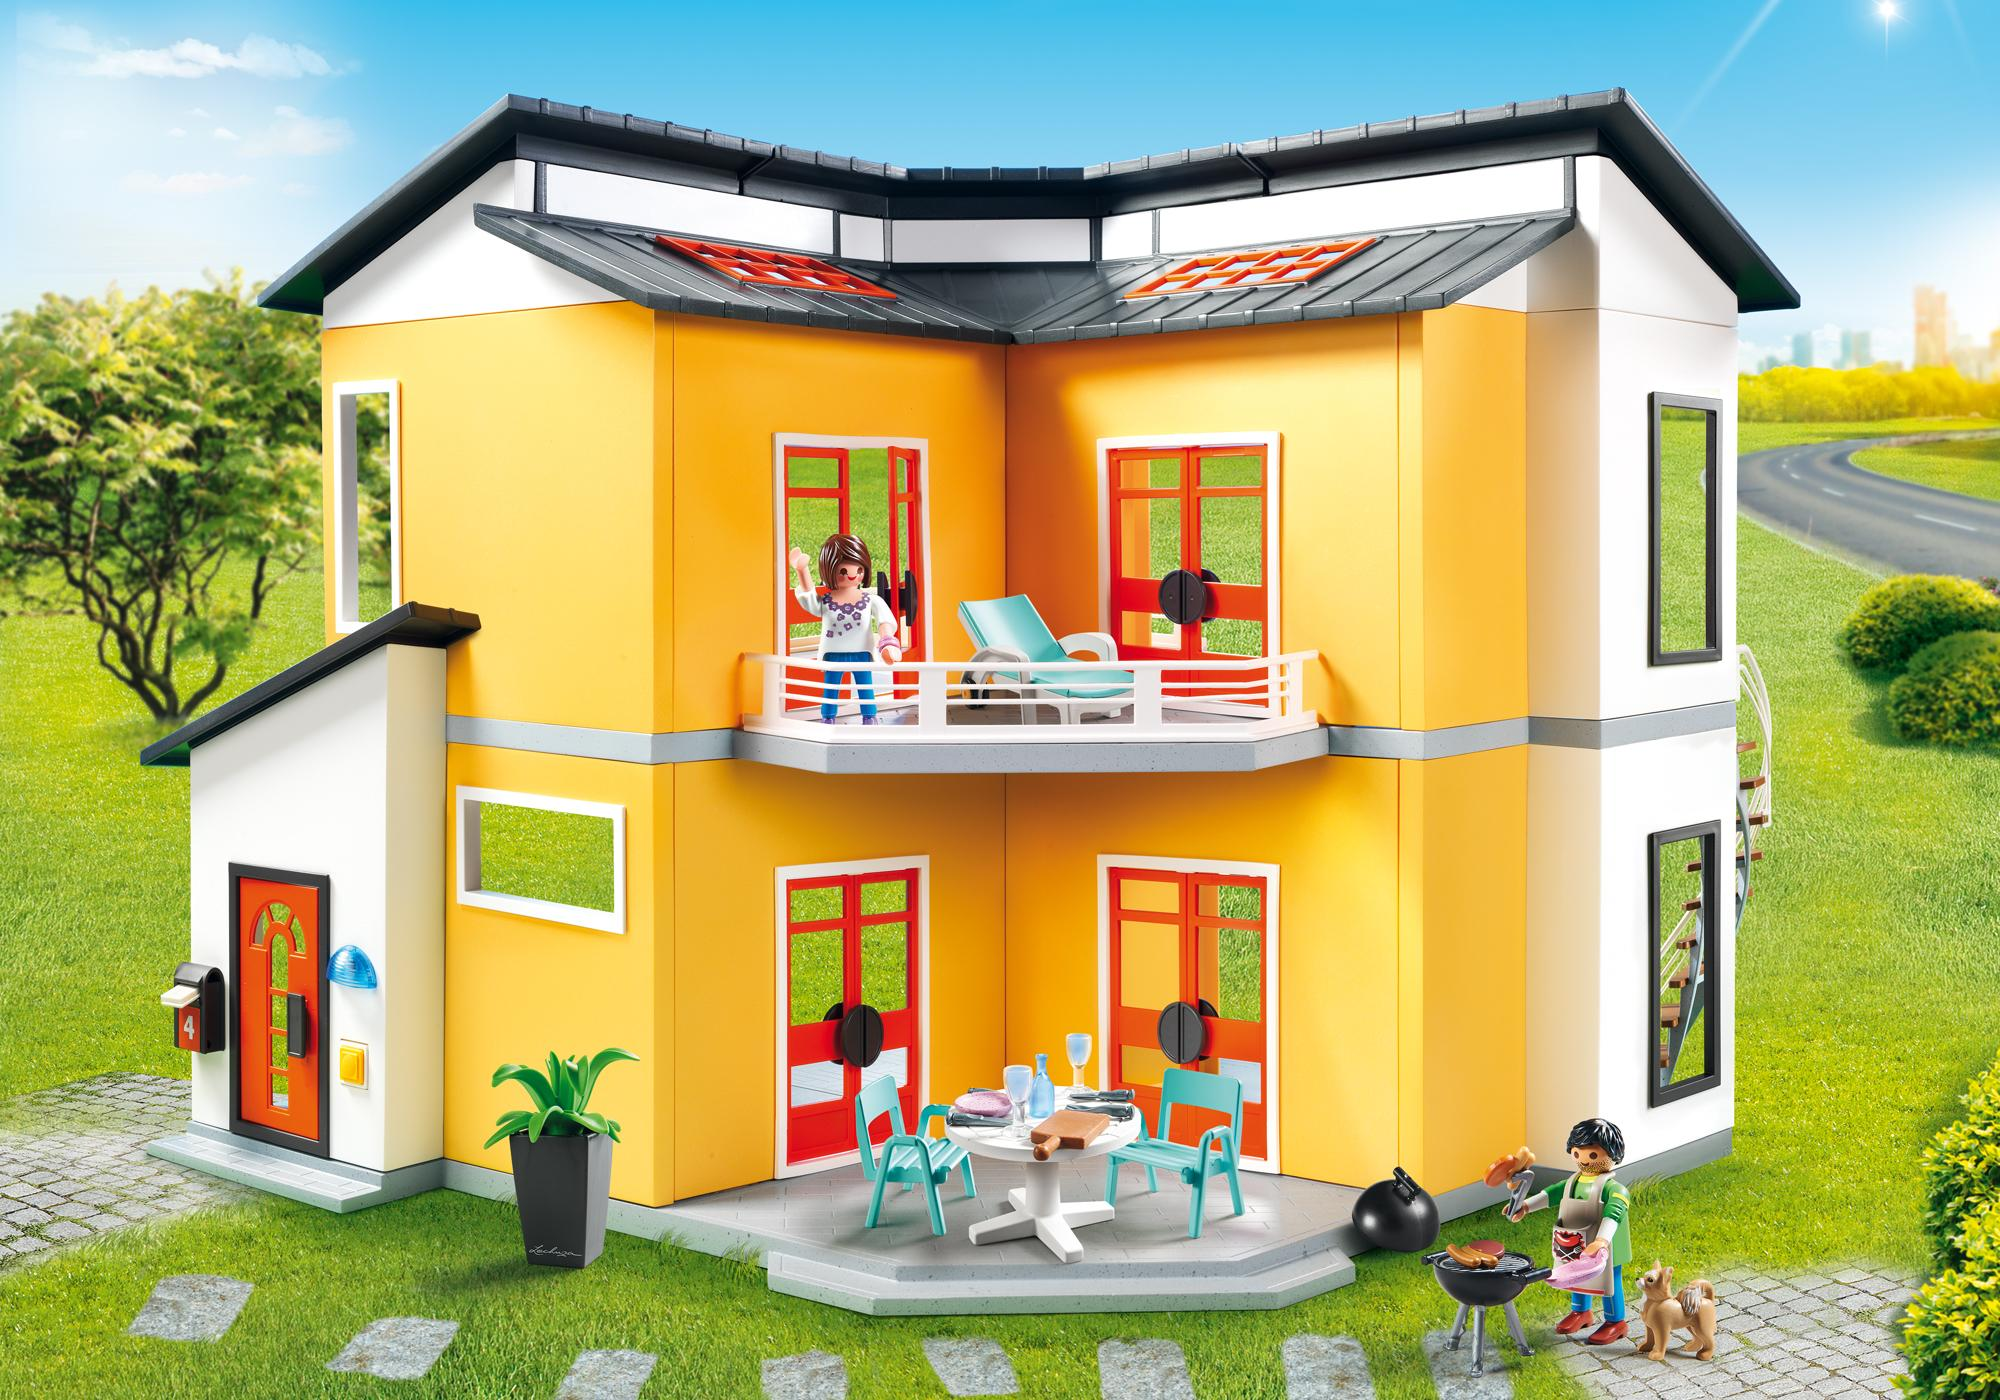 Eclairage Maison Playmobil Maison Moderne 9266 Playmobil France